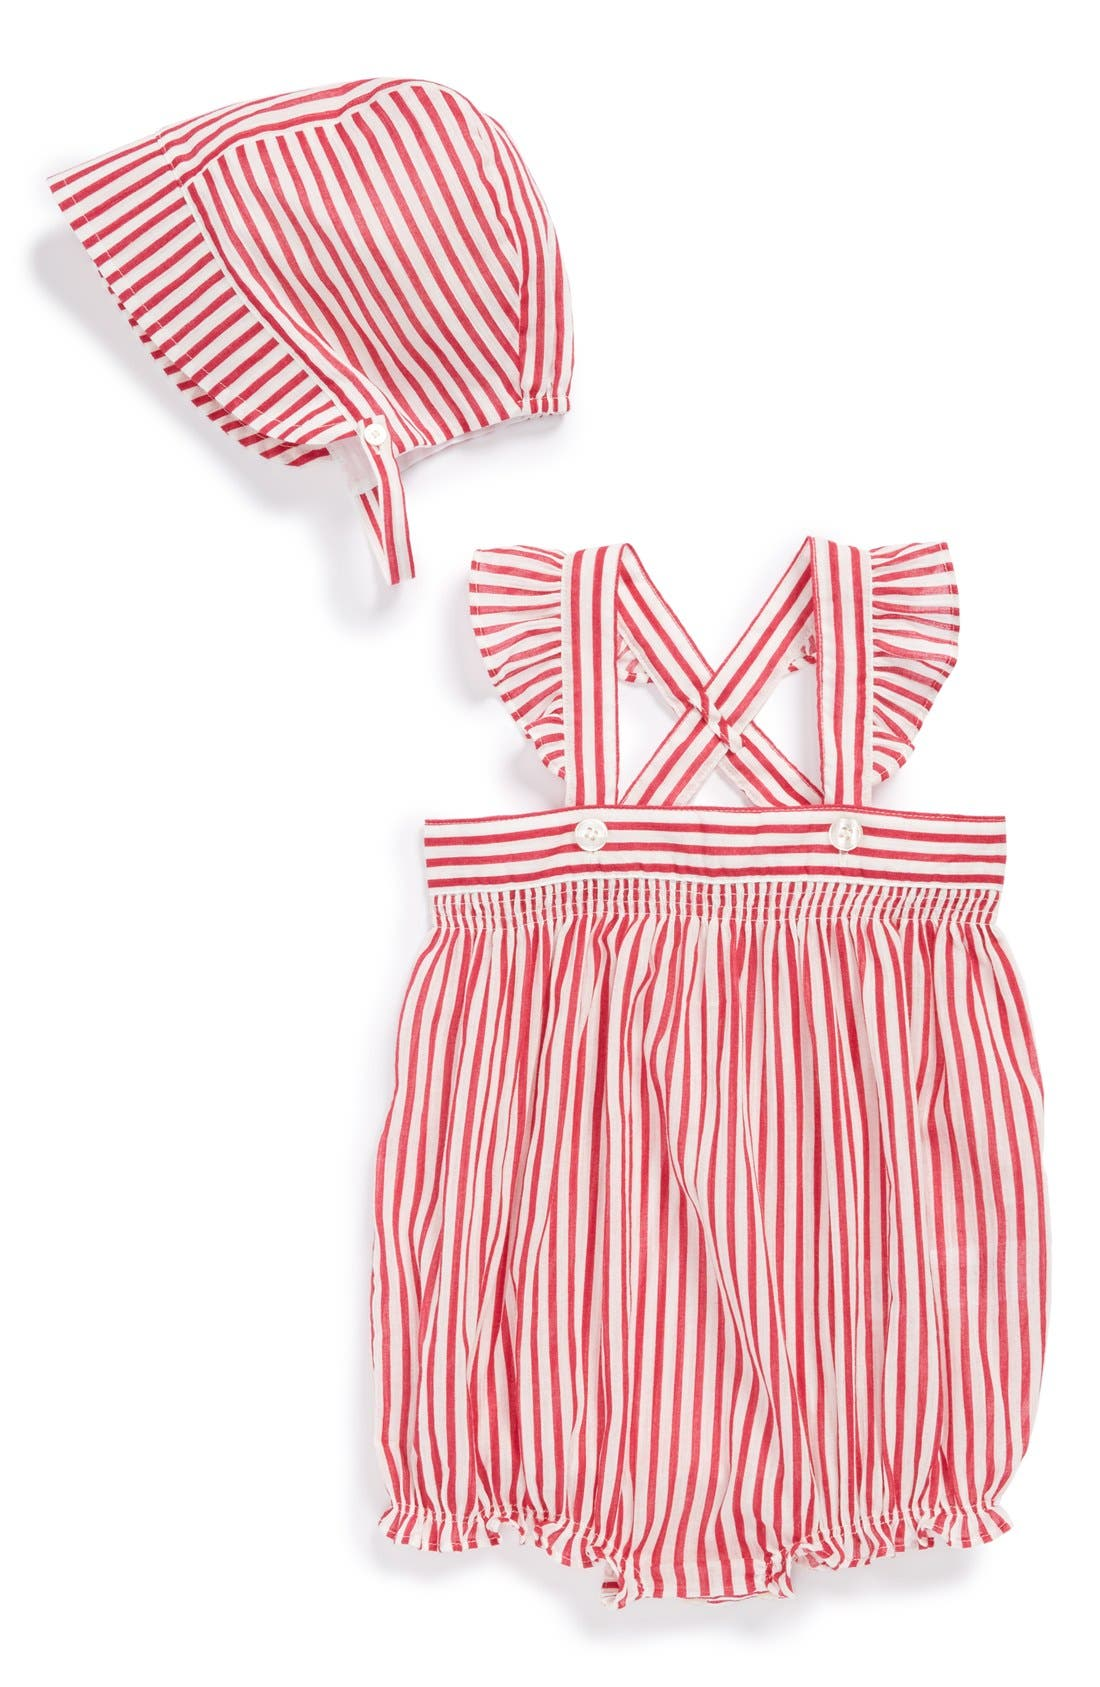 Alternate Image 1 Selected - Burberry Stripe Overalls & Sun Hat (Baby Girls)